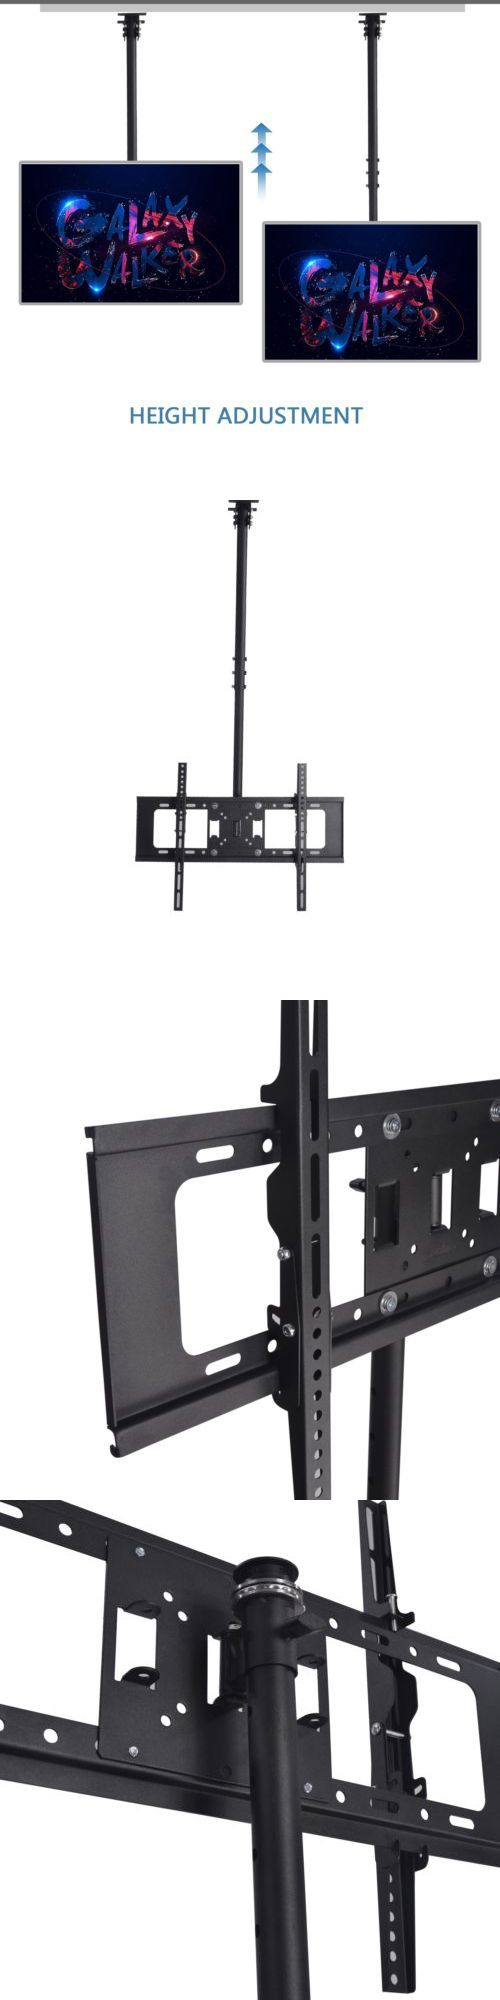 TV Mounts and Brackets  Ceiling Tv Mount Bracket Tilt Swivel Led Lcd Plasma  30 32. The 25  best Ceiling mount tv bracket ideas on Pinterest   Define